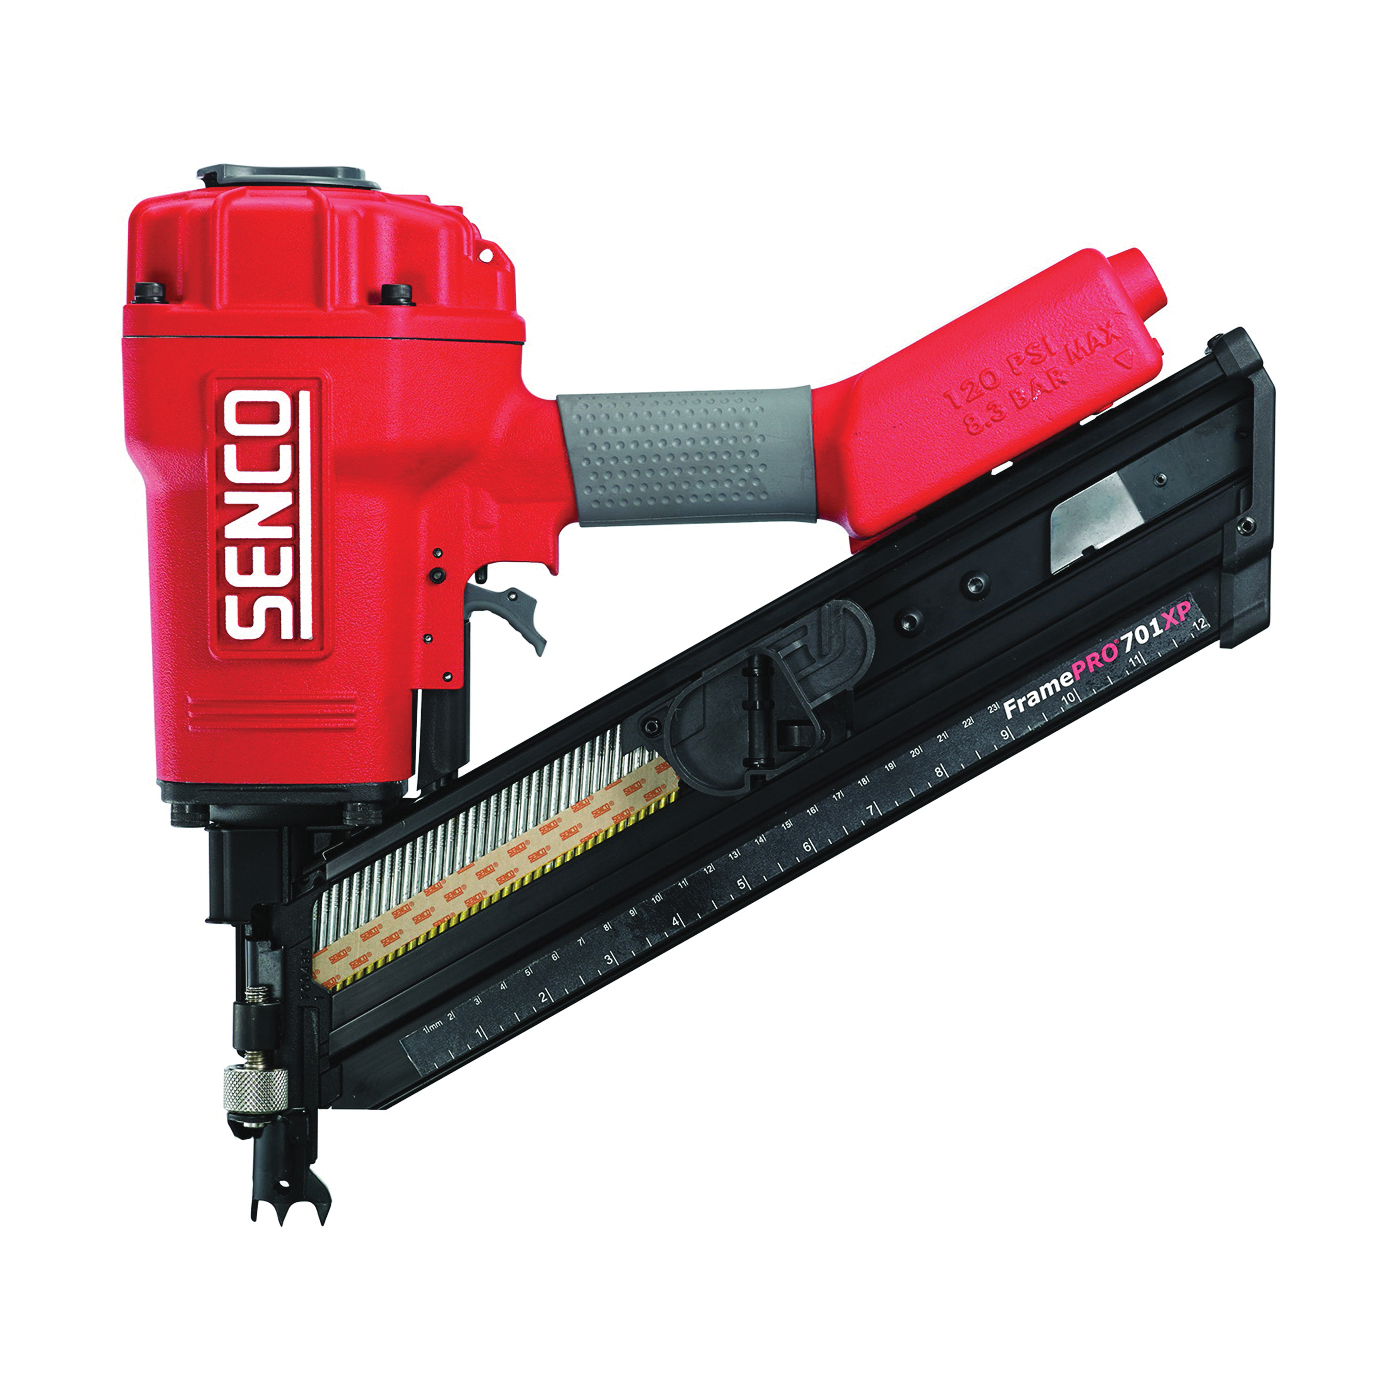 Picture of SENCO 2H0133N Framing Nailer, 70 Magazine, 34 deg Collation, Paper Tape Collation, 10 cfm/Shot Air